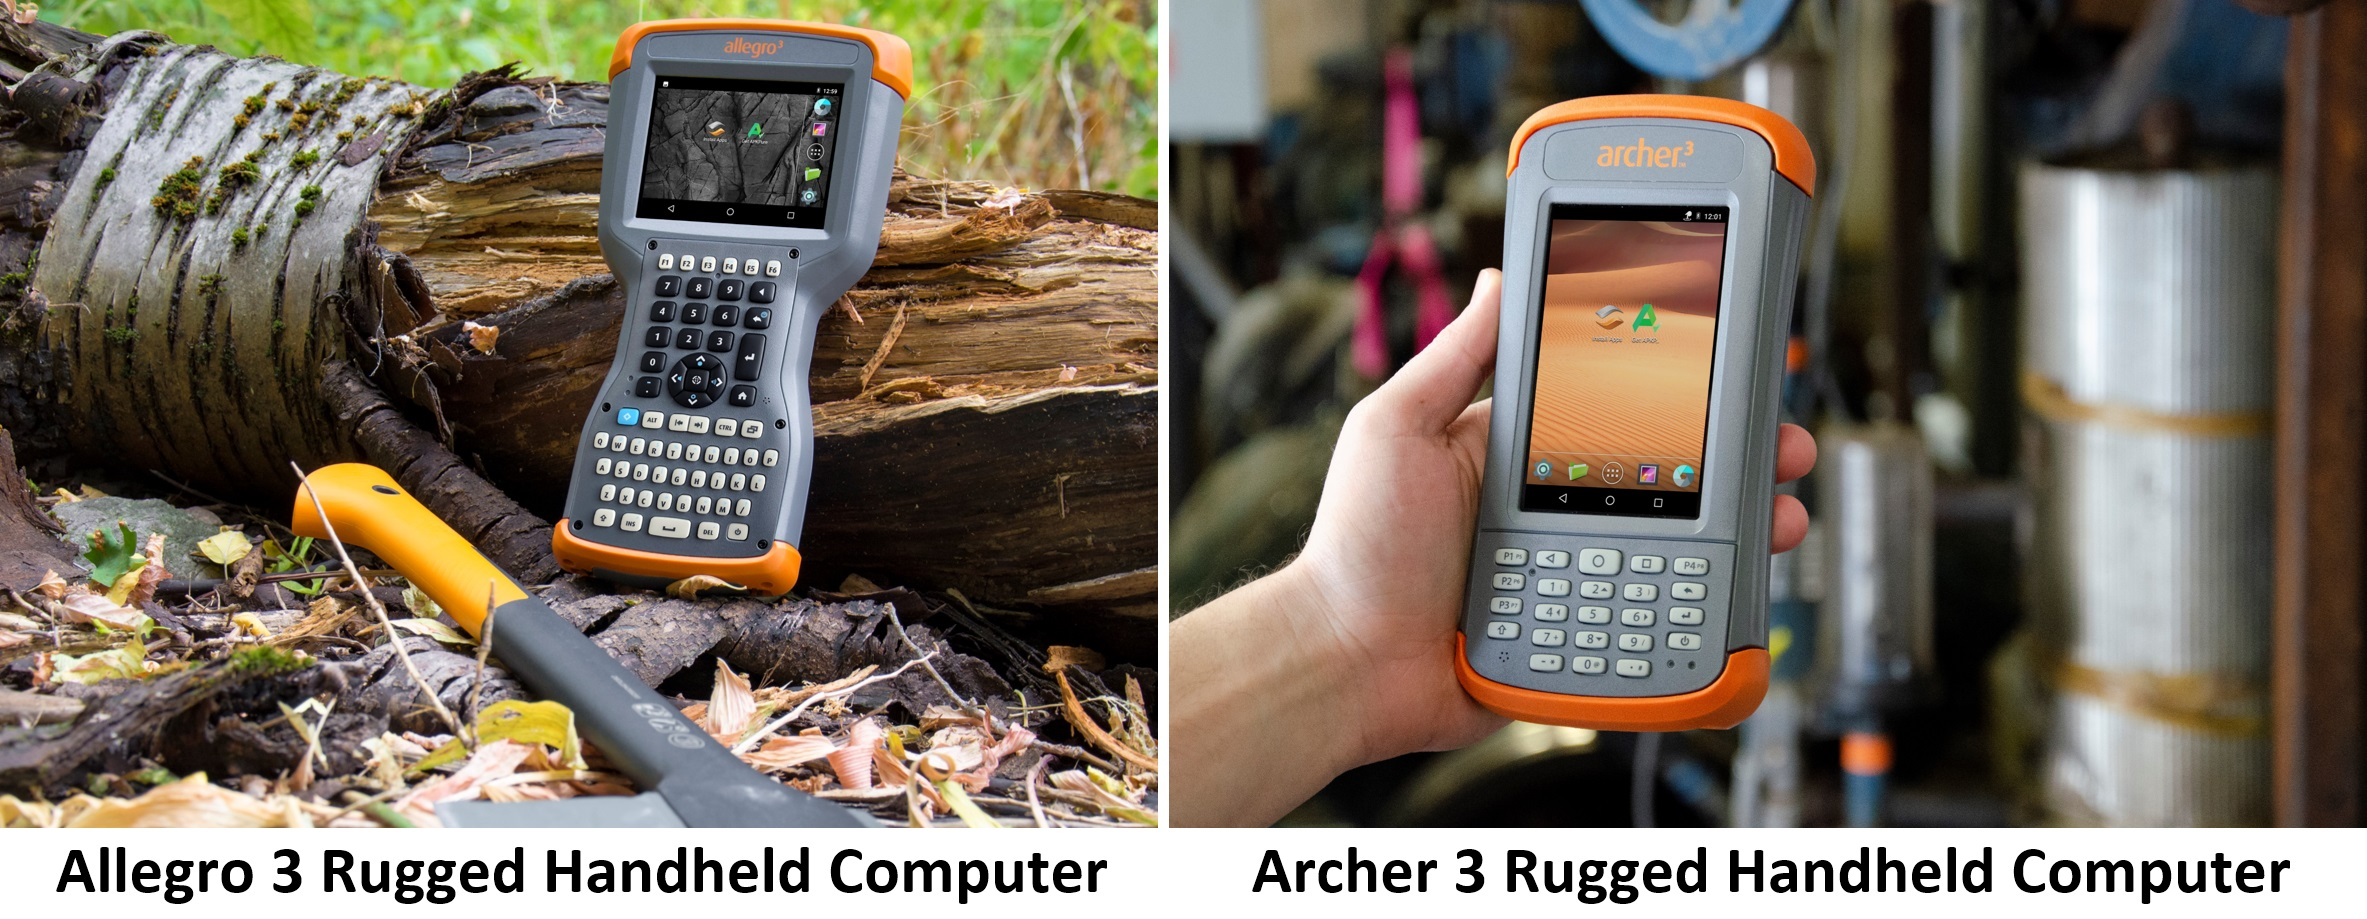 New Allegro 3 and Archer 3 Rugged Handheld Computers from Juniper Systems Limited. 16 April 2019